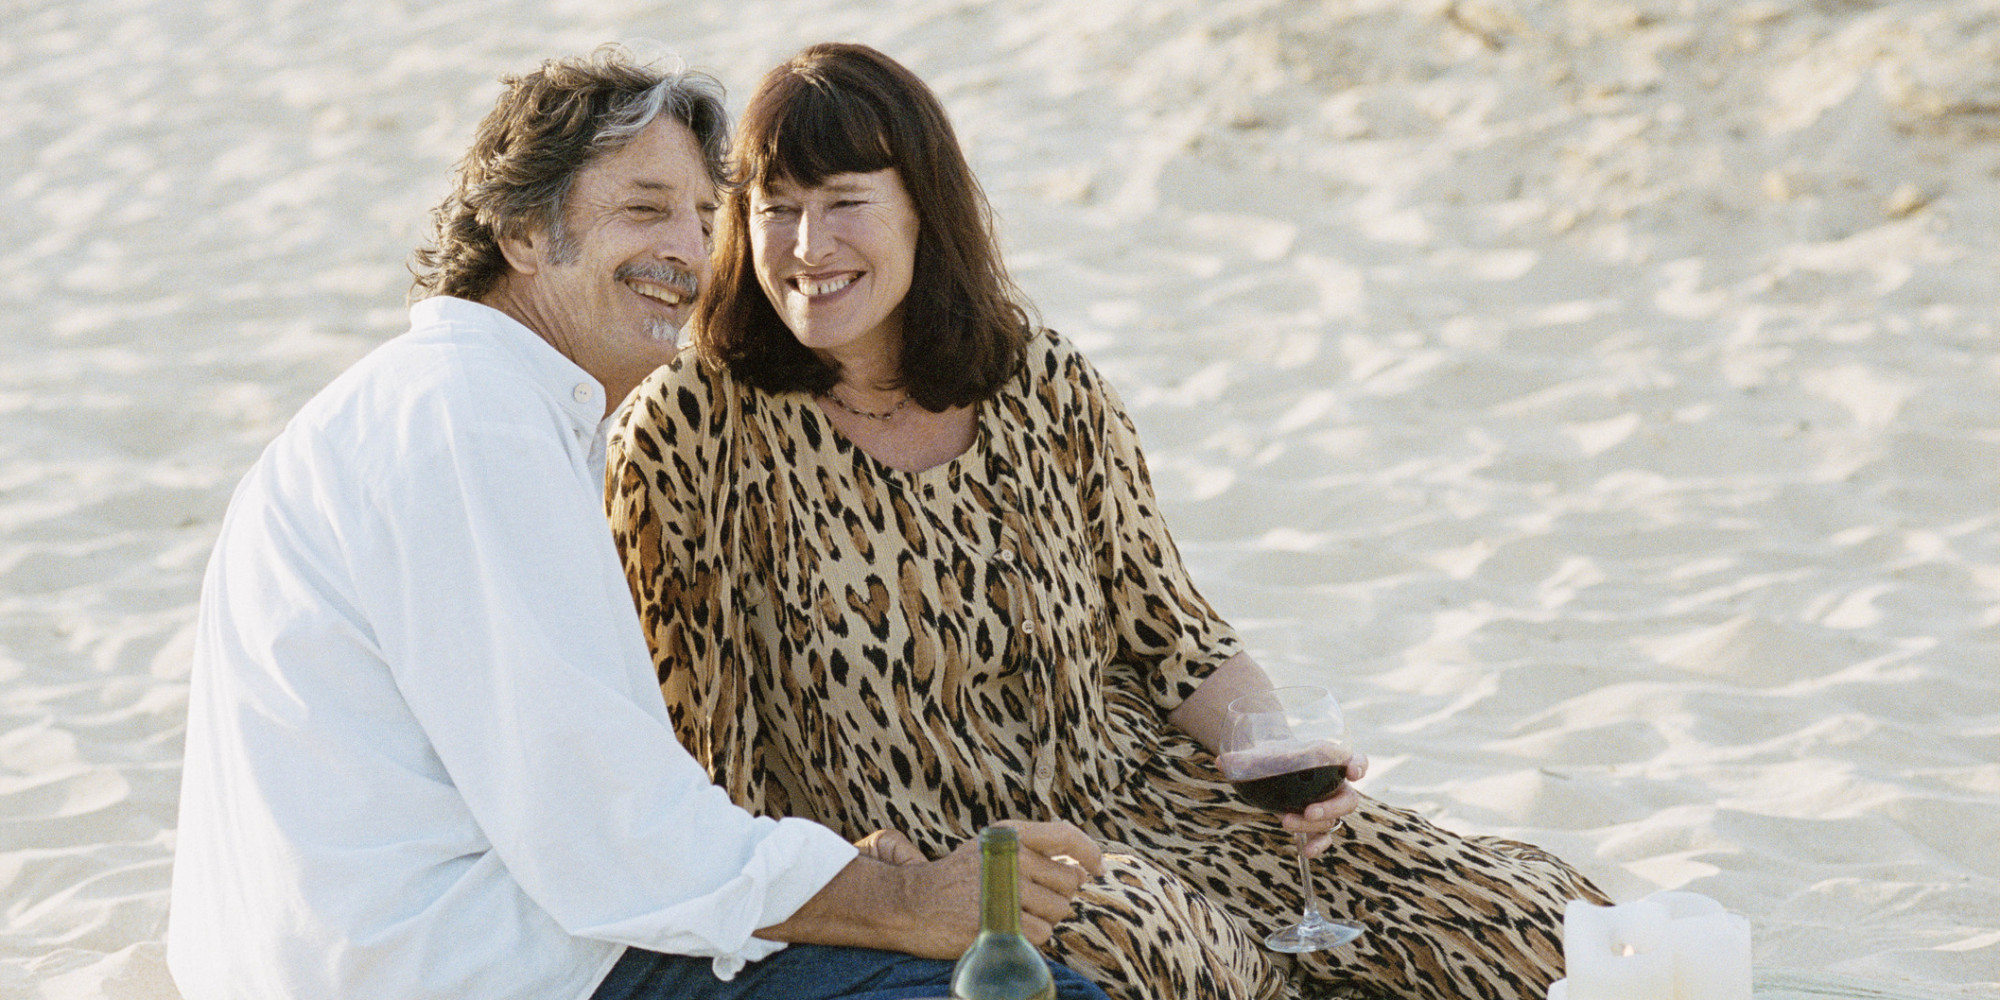 Dating websites for middle aged